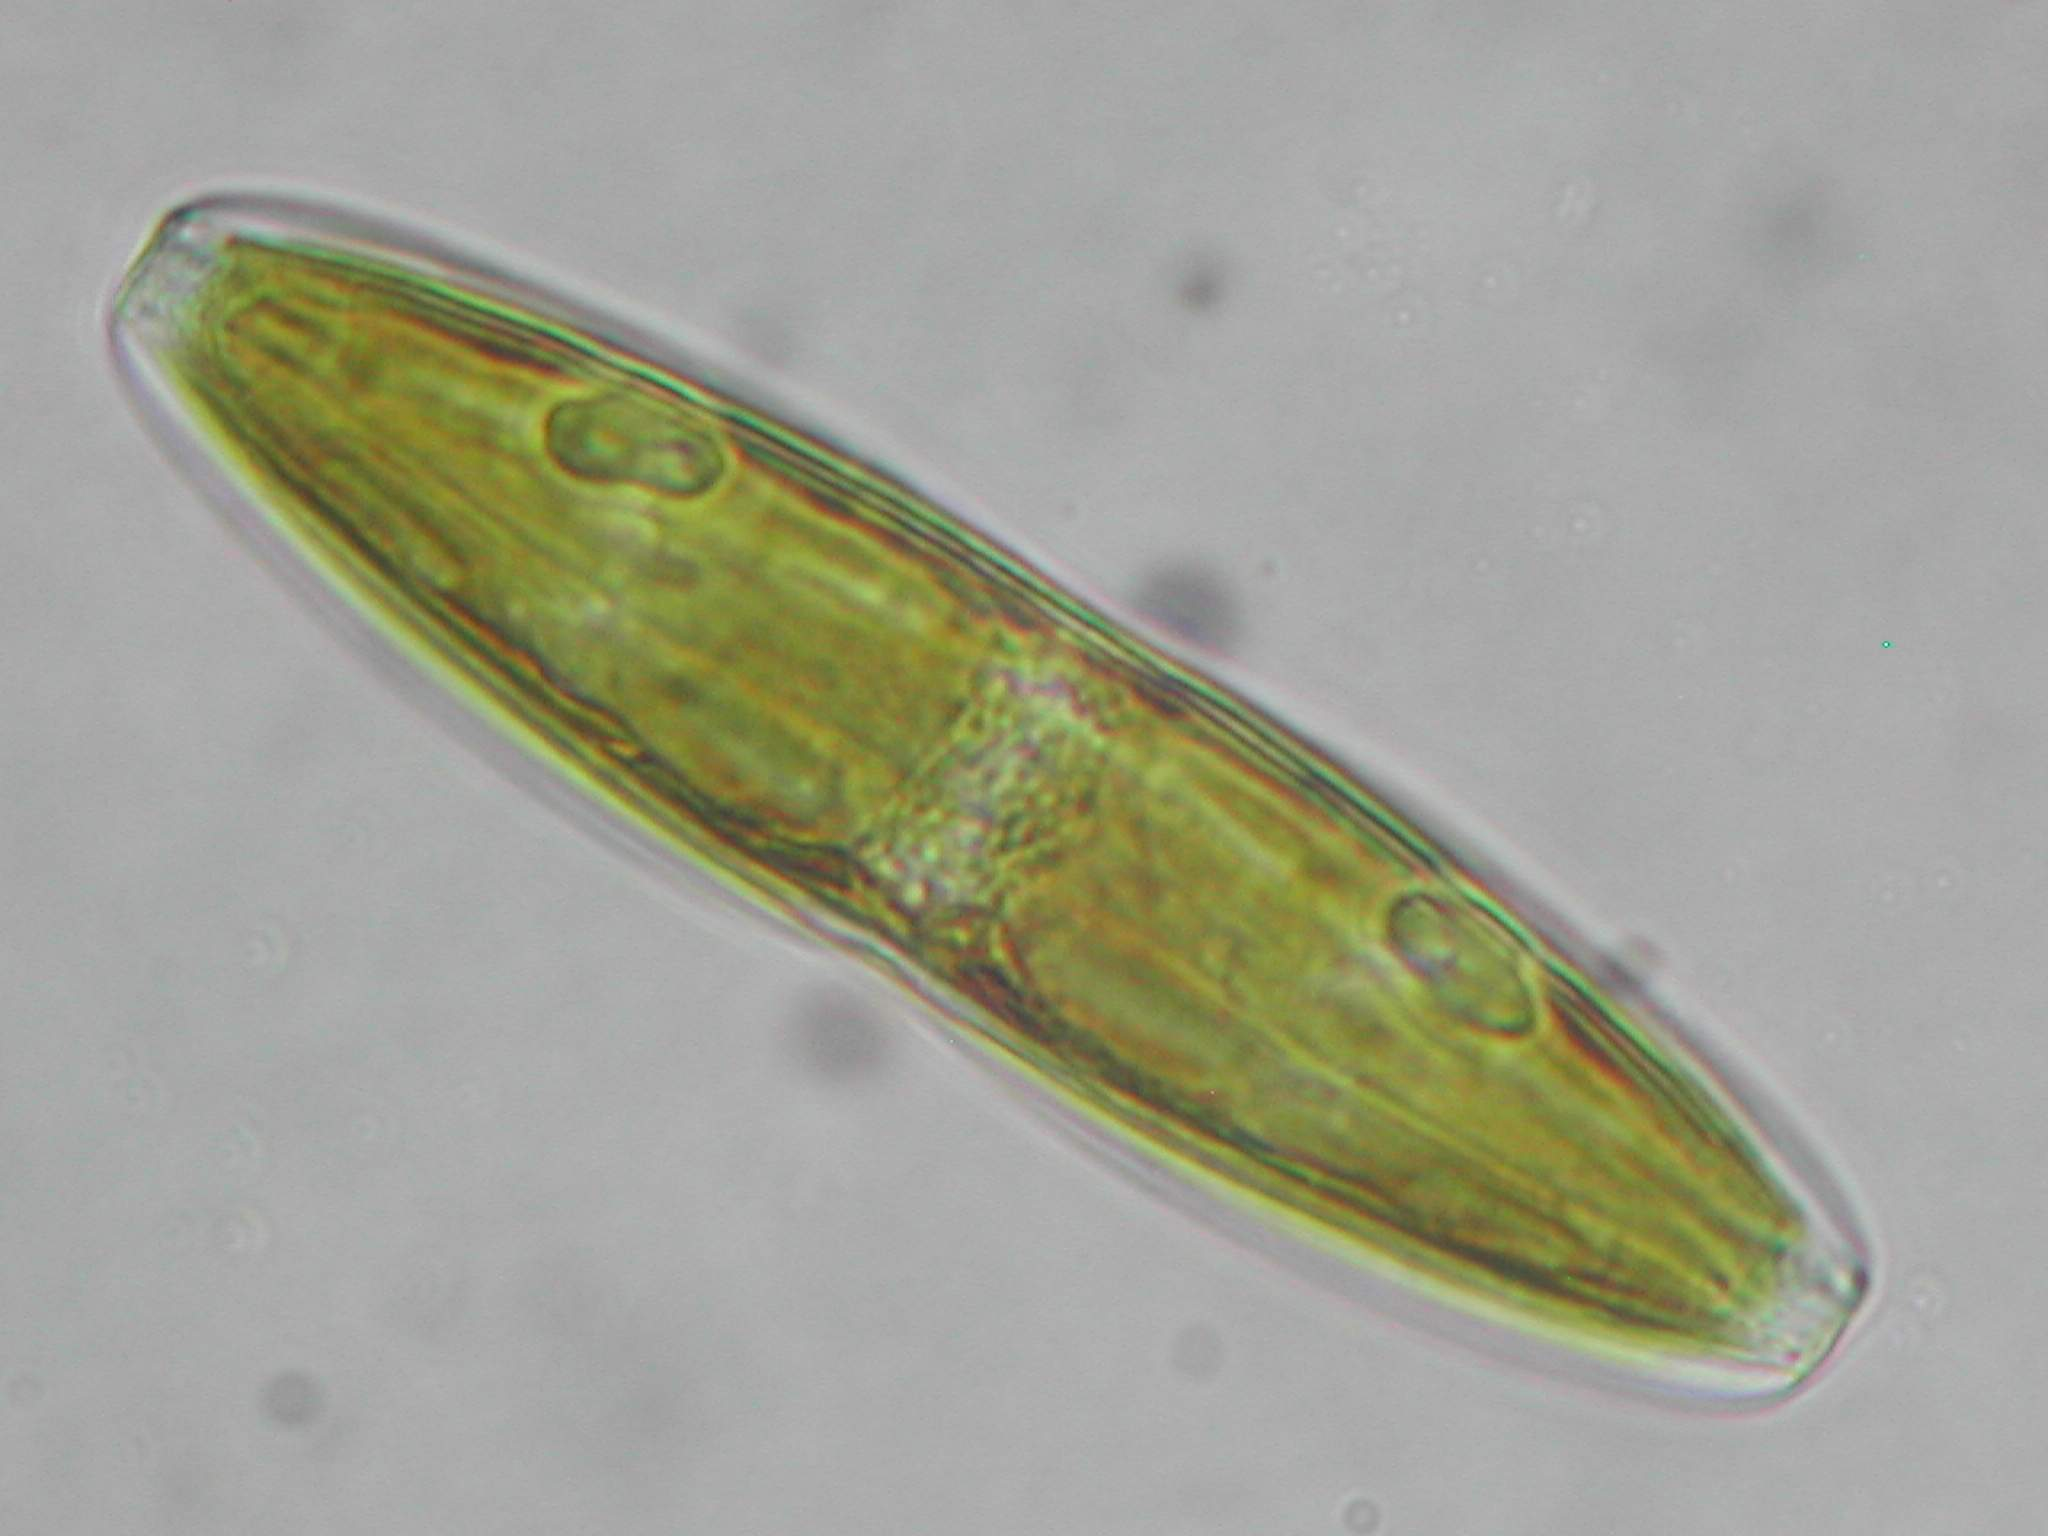 Diatom - this diatom is common in salt marshes and salt flats Diatom Cell